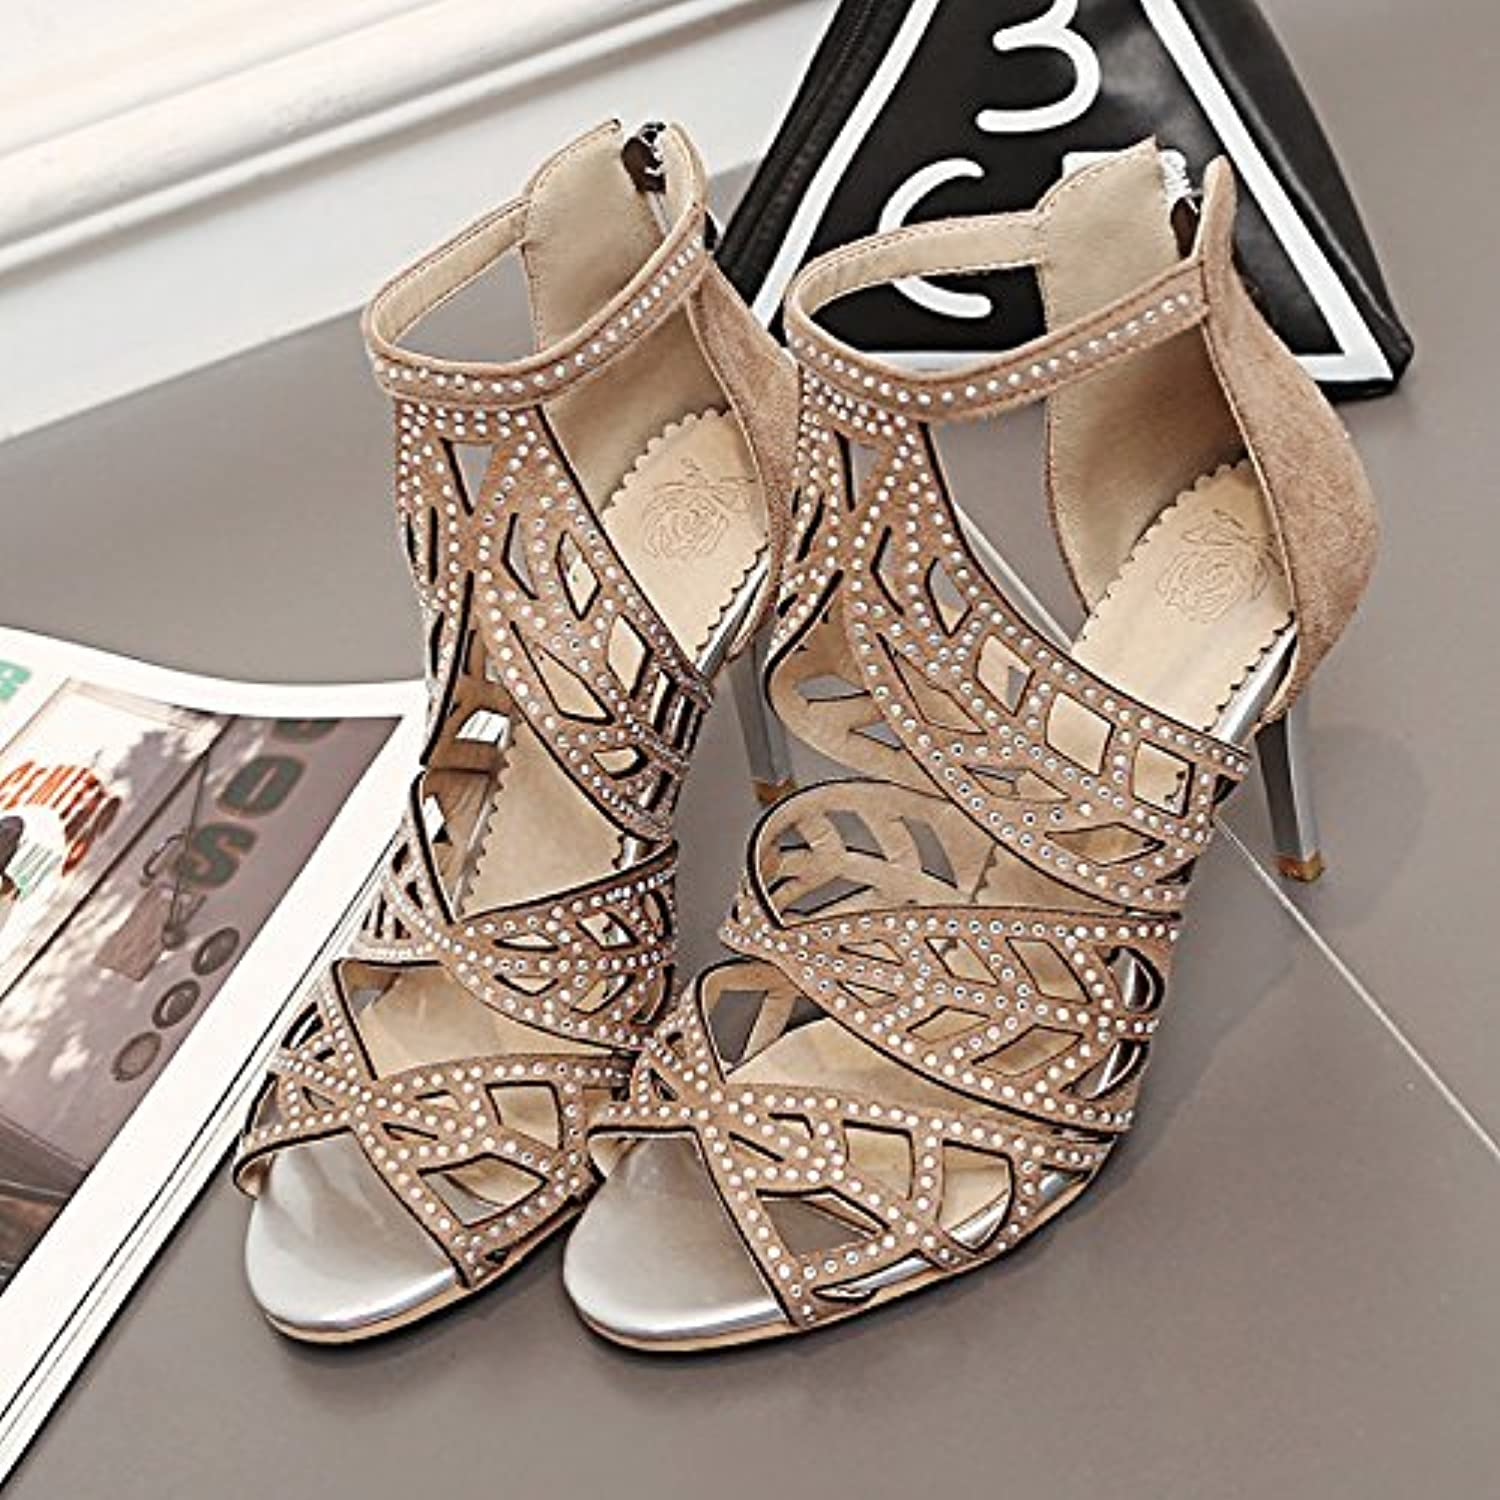 WHW Women's Club shoes Leatherette Party Evening Dress Casual Chunky Heel Sandals